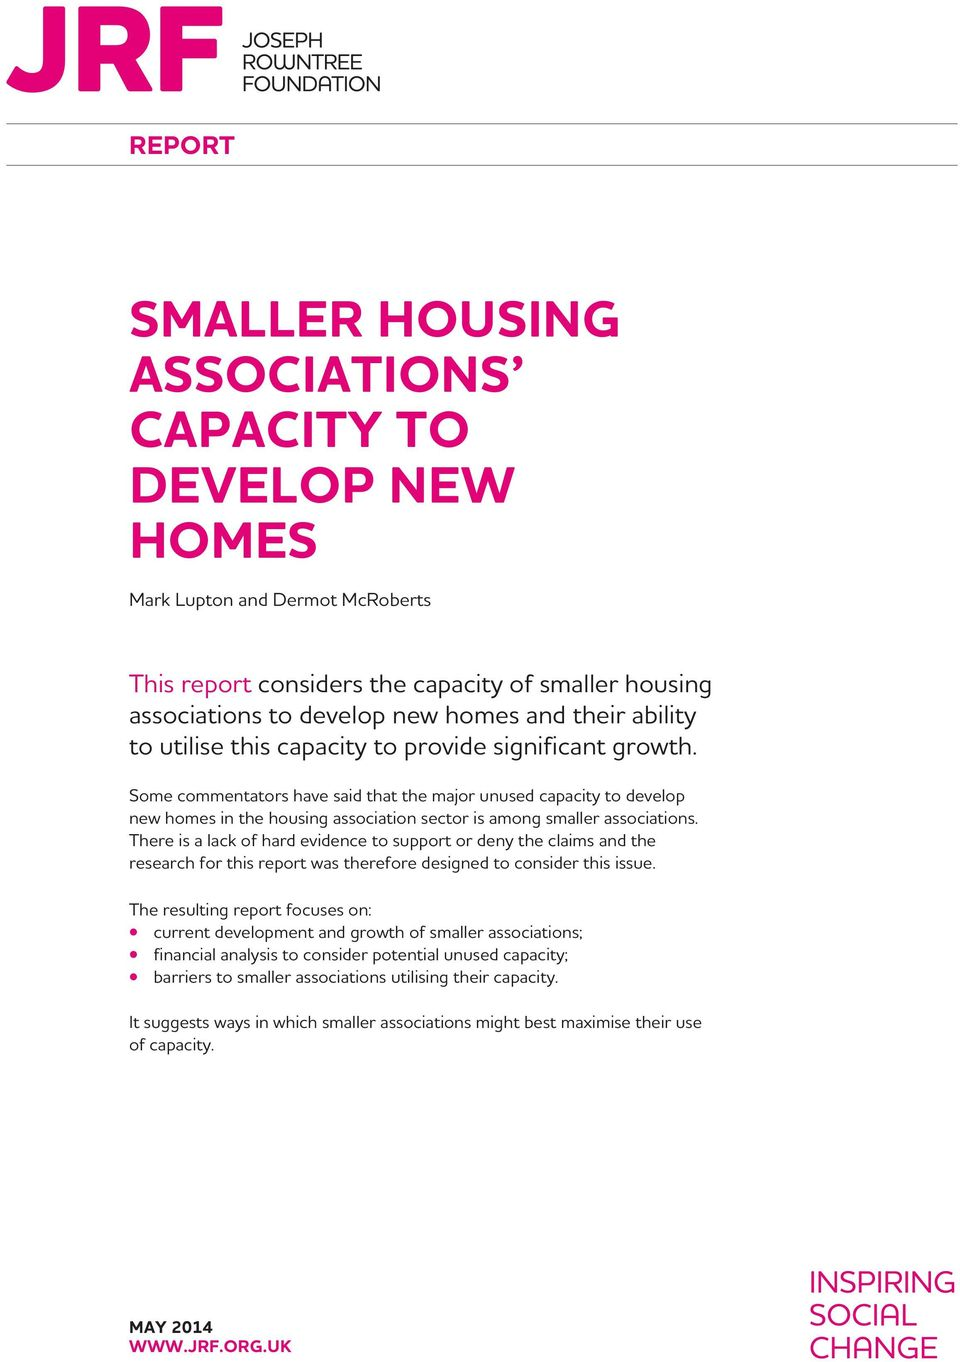 Some commentators have said that the major unused capacity to develop new homes in the housing association sector is among smaller associations.